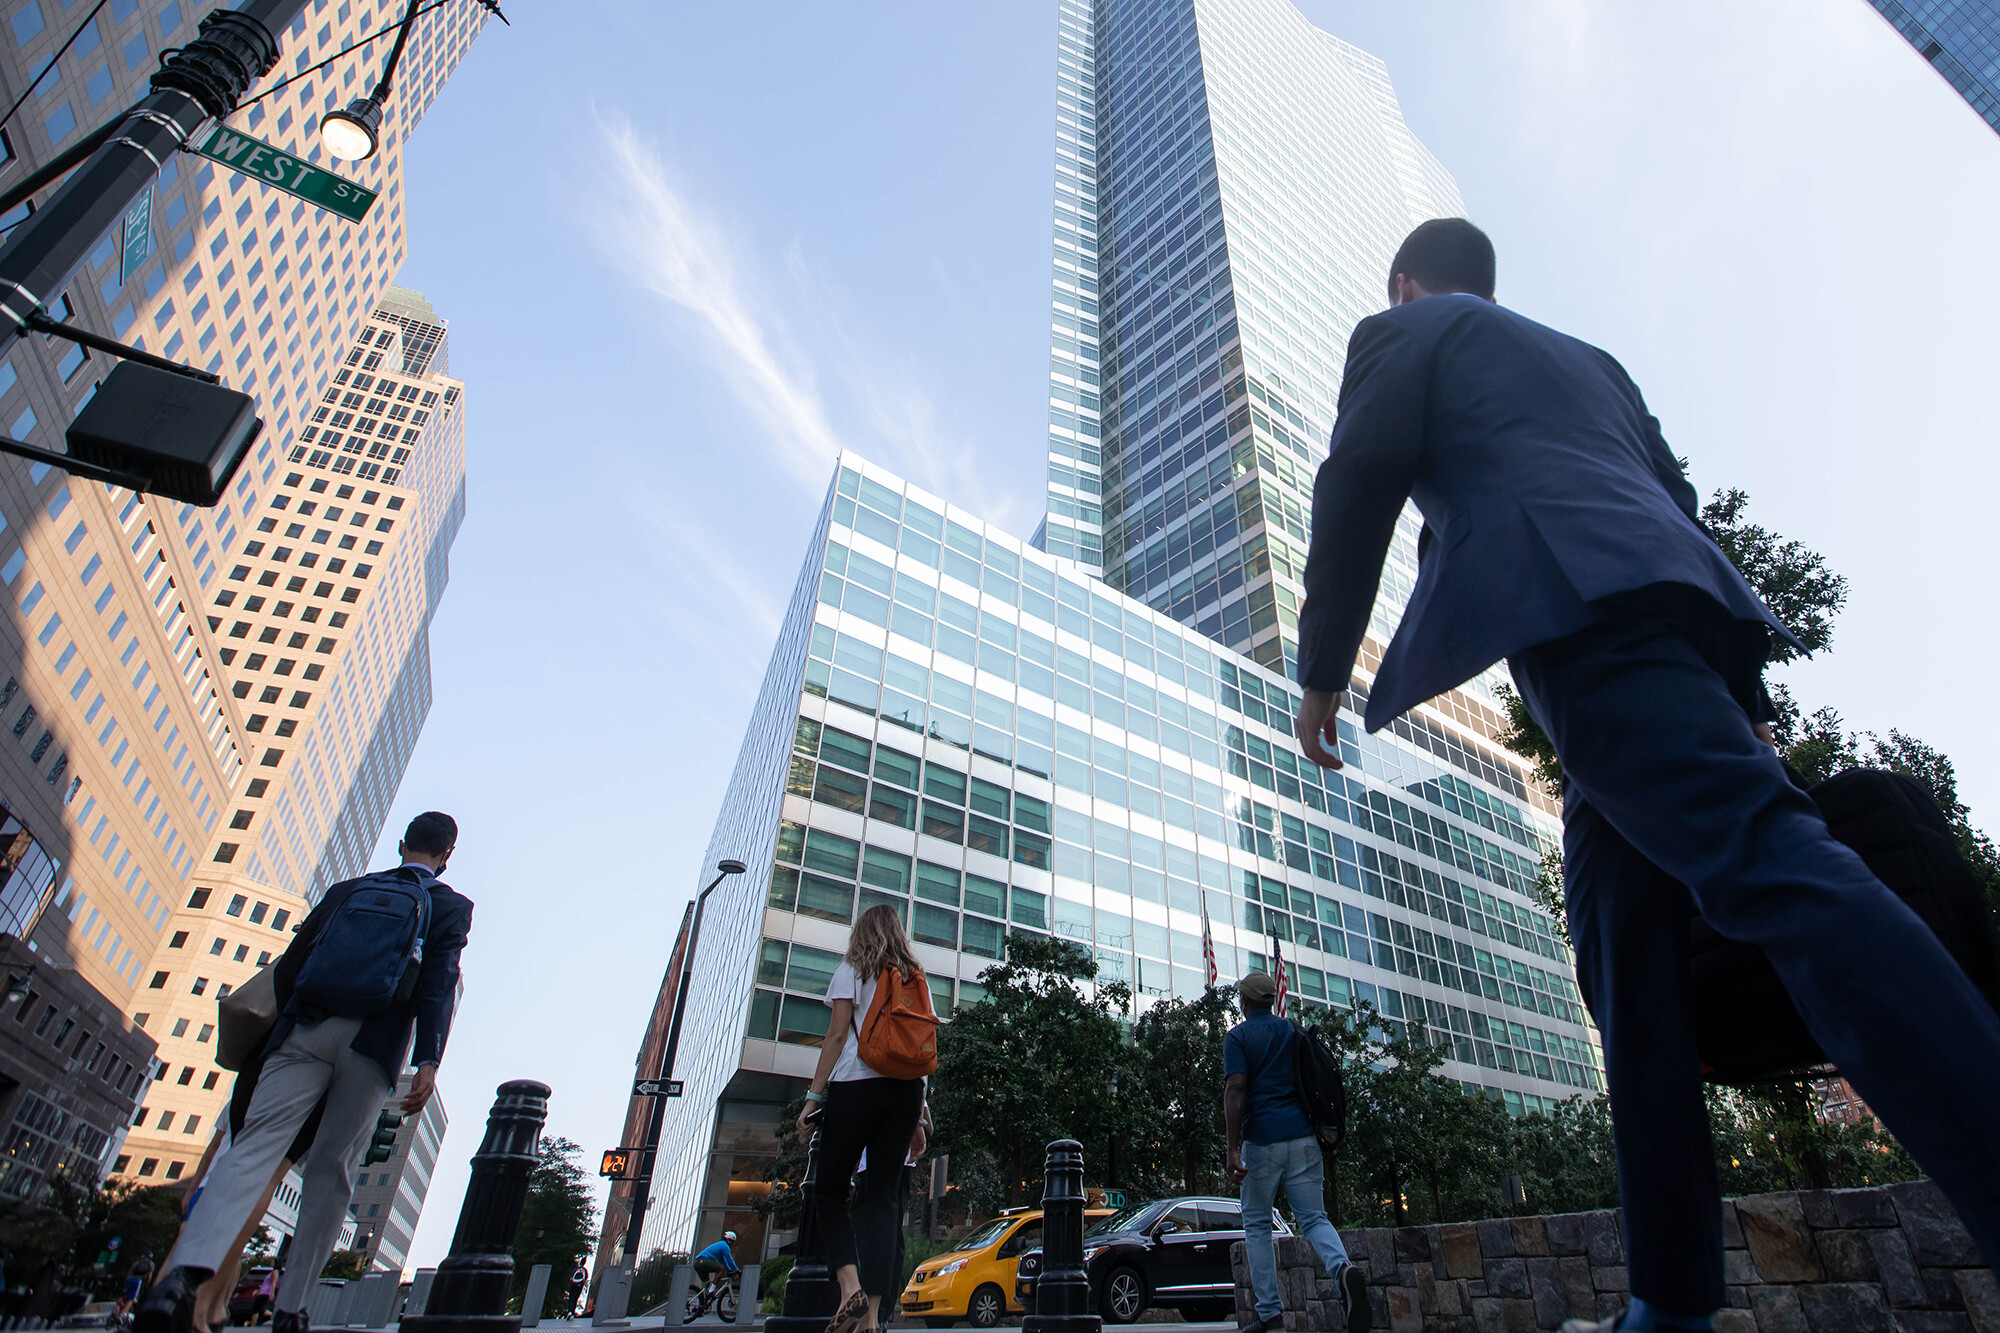 <i>Michael Nagle/Bloomberg/Getty Images</i><br/>Goldman Sachs is barring employees from using their ID cards to enter the office building if they haven't submitted proof of their vaccination status